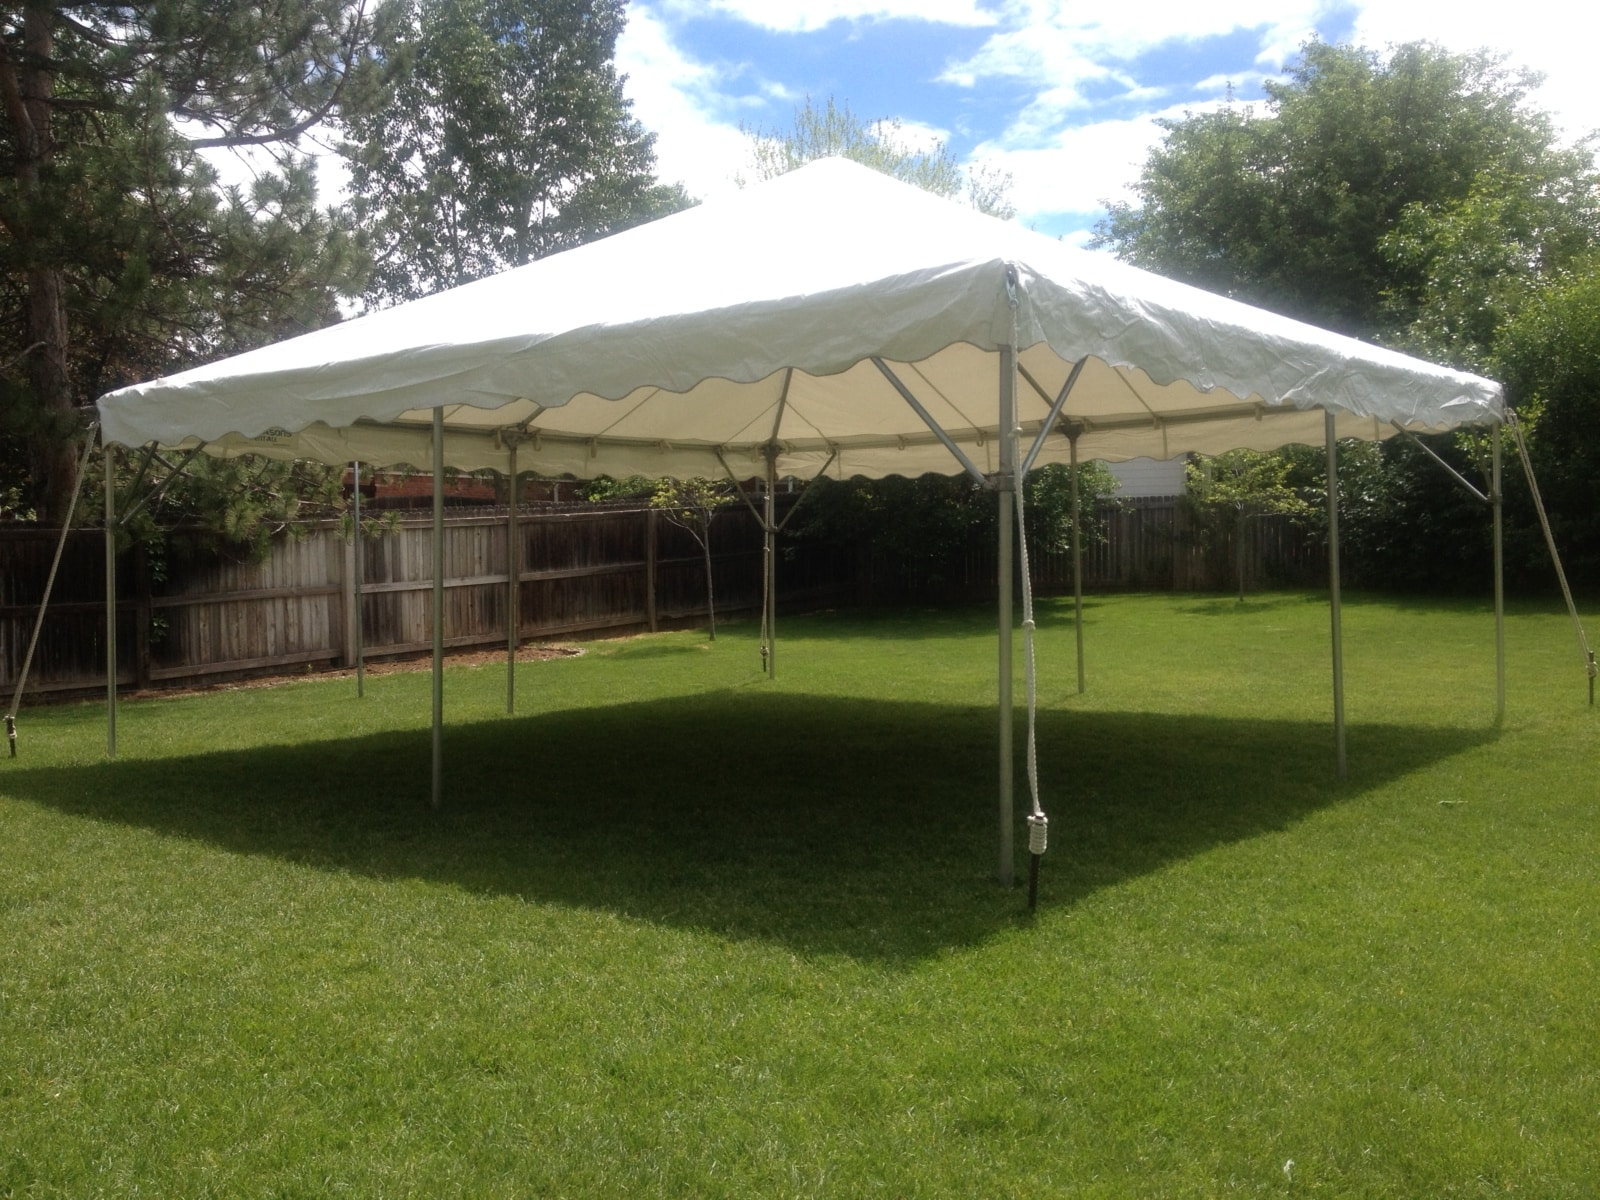 frame tent 20'x20' tops - equipment for sale